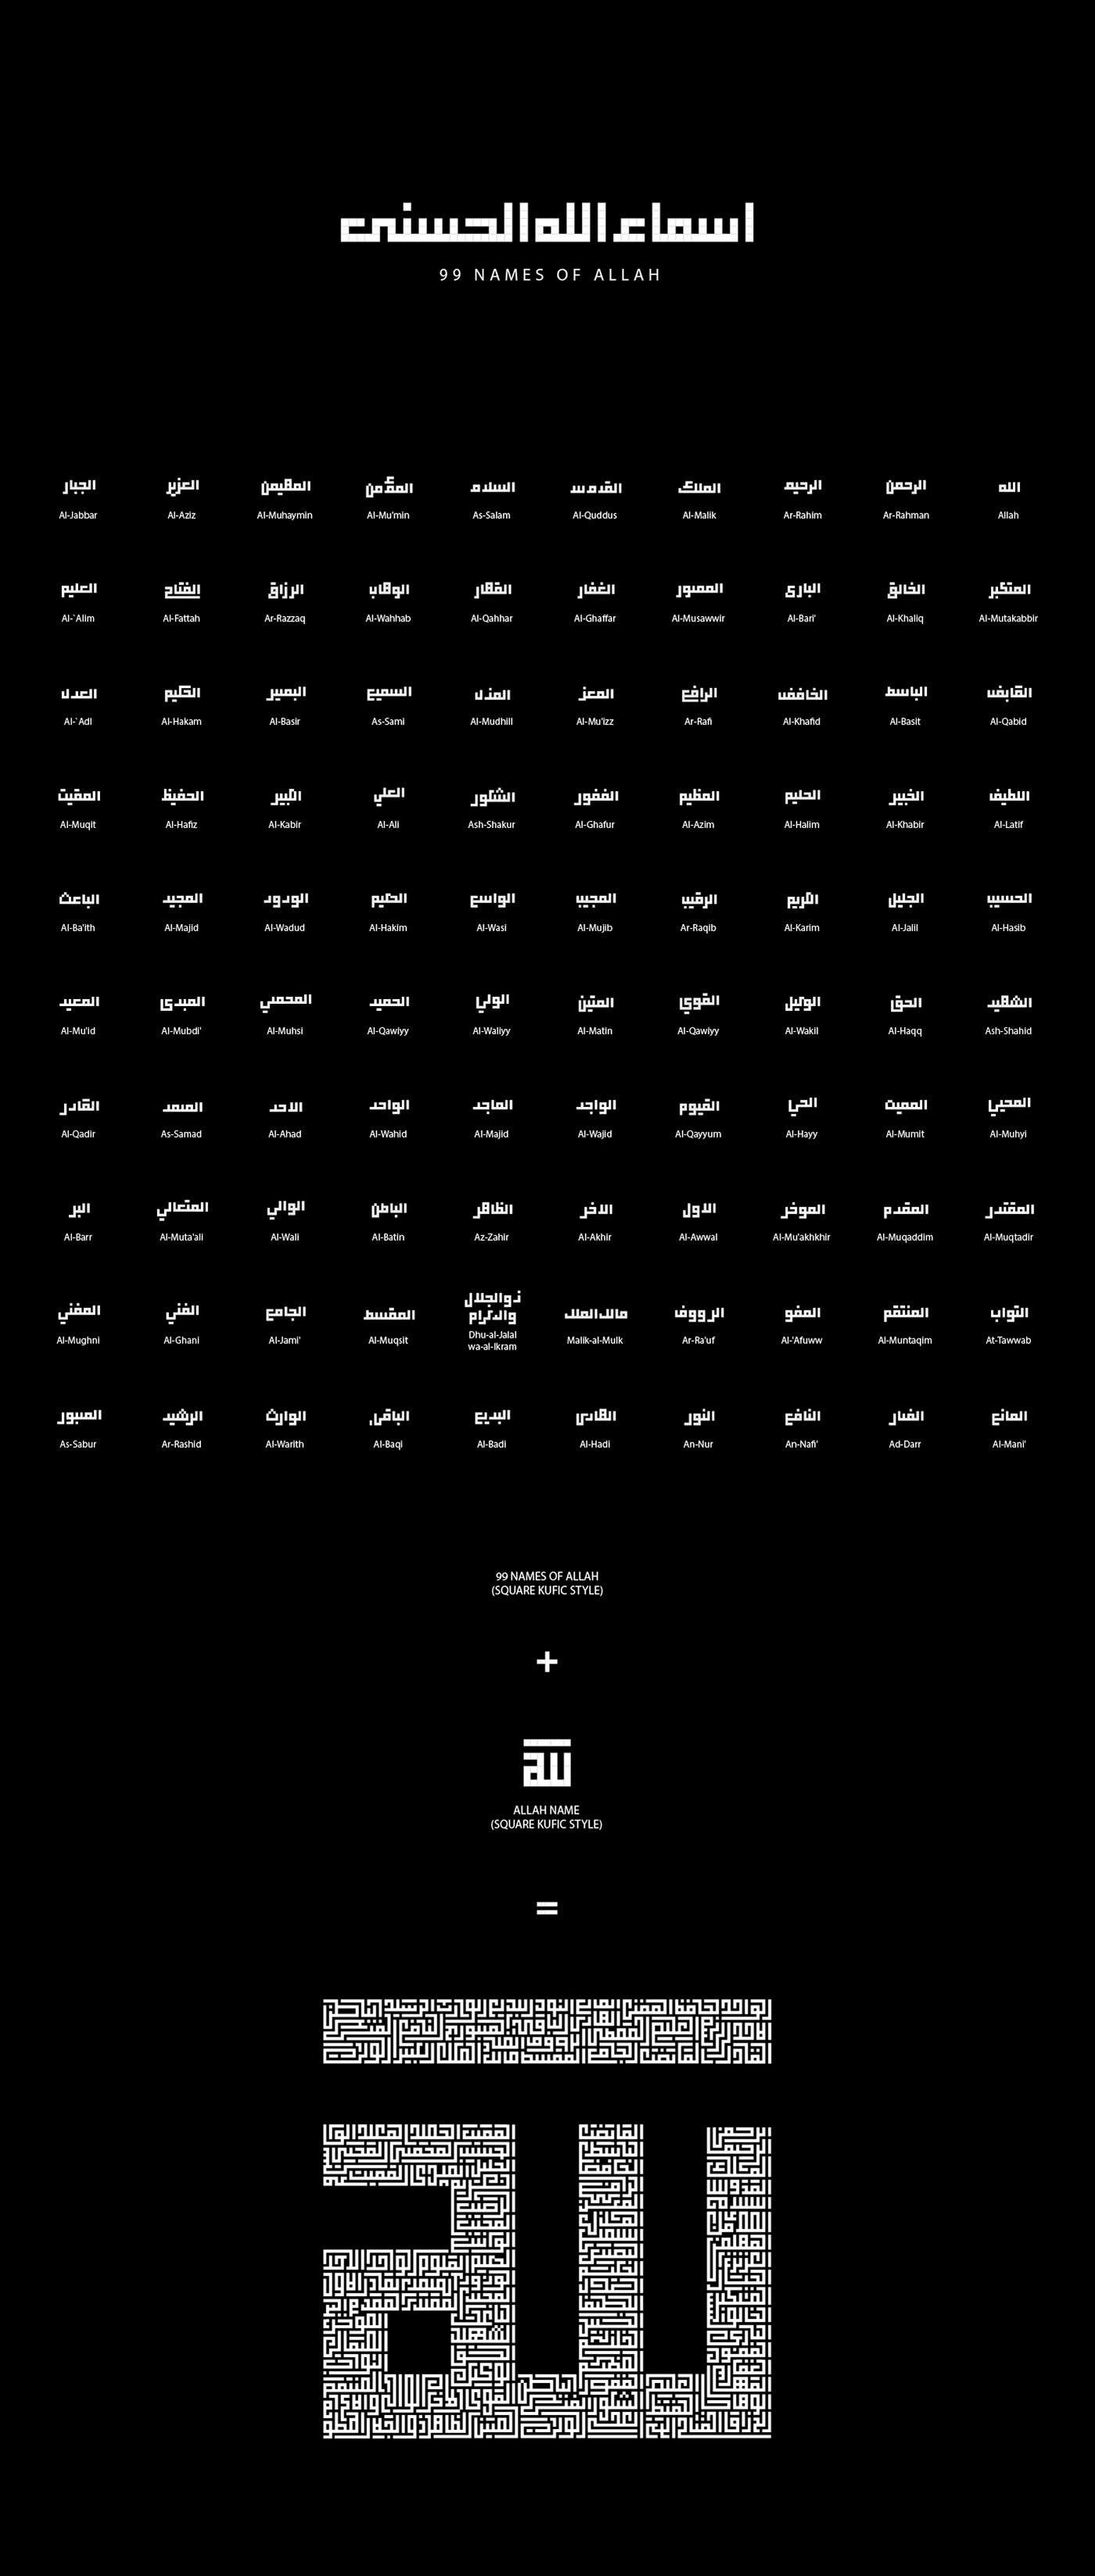 Allah typography created of his 99 names in square kufic